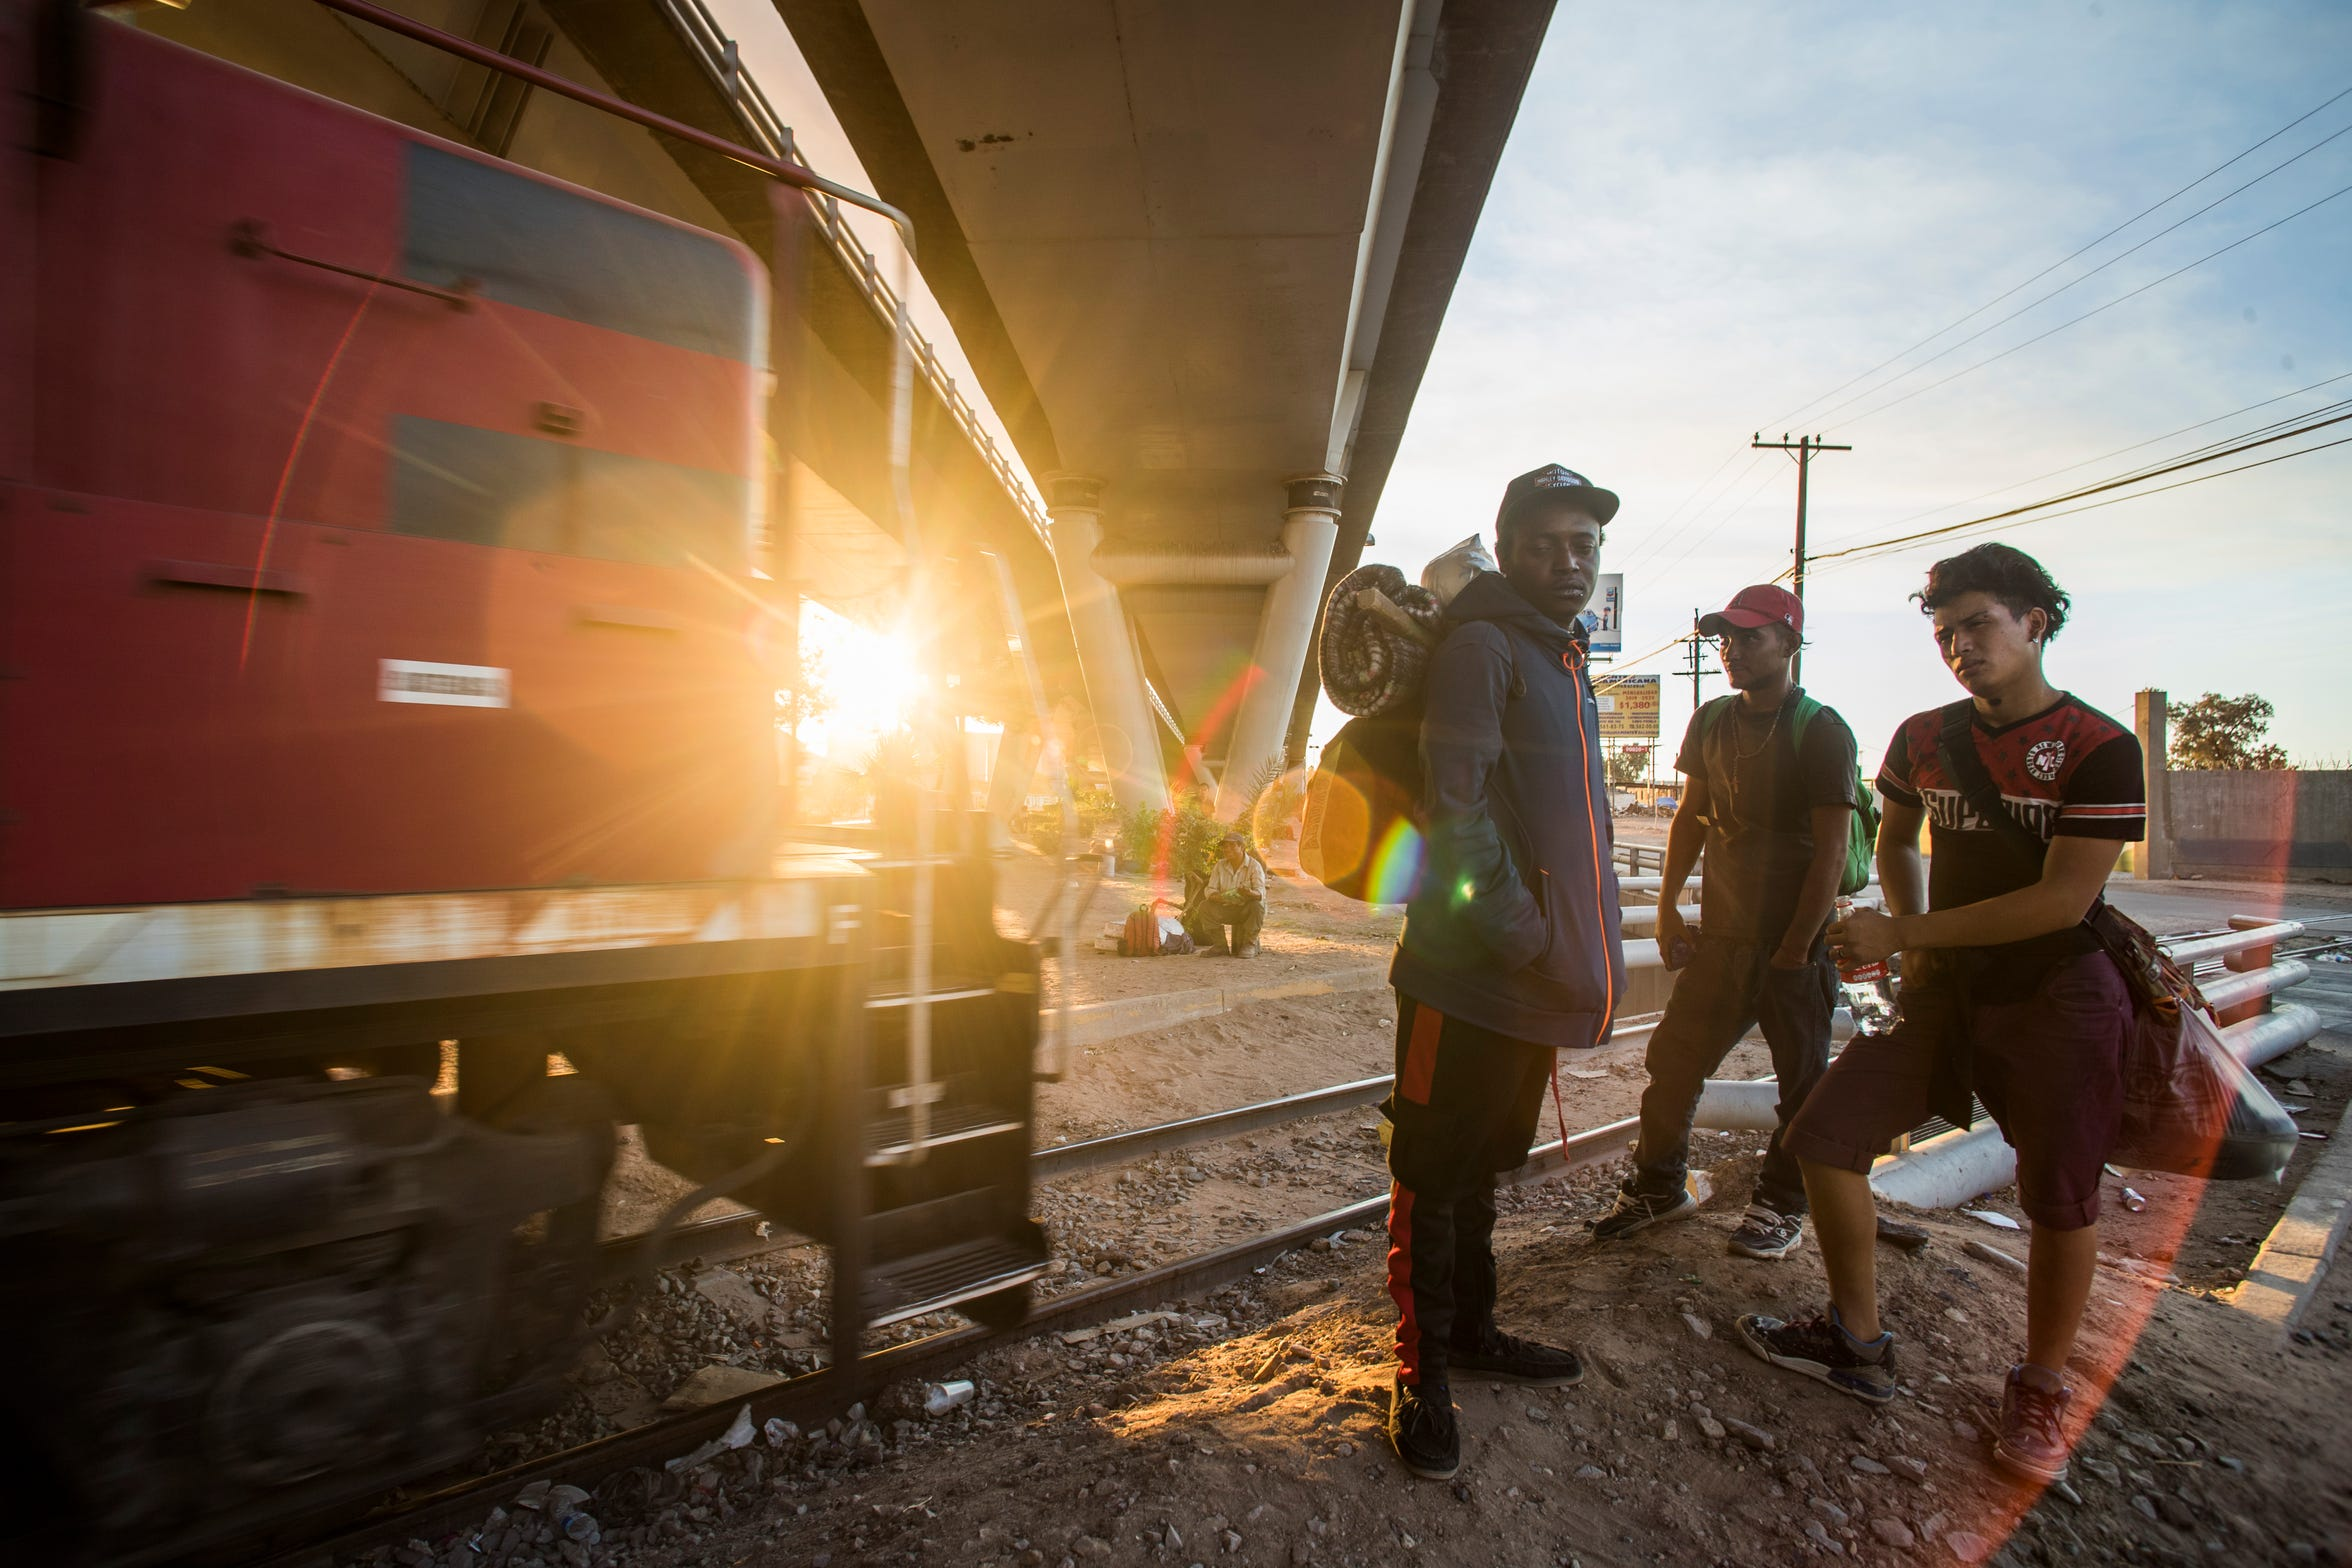 No longer willing to stay in Mexico while they wait for a hearing regarding their requests for asylum in the United States, these young Honduran migrants decide to return to Honduras by jumping a train.